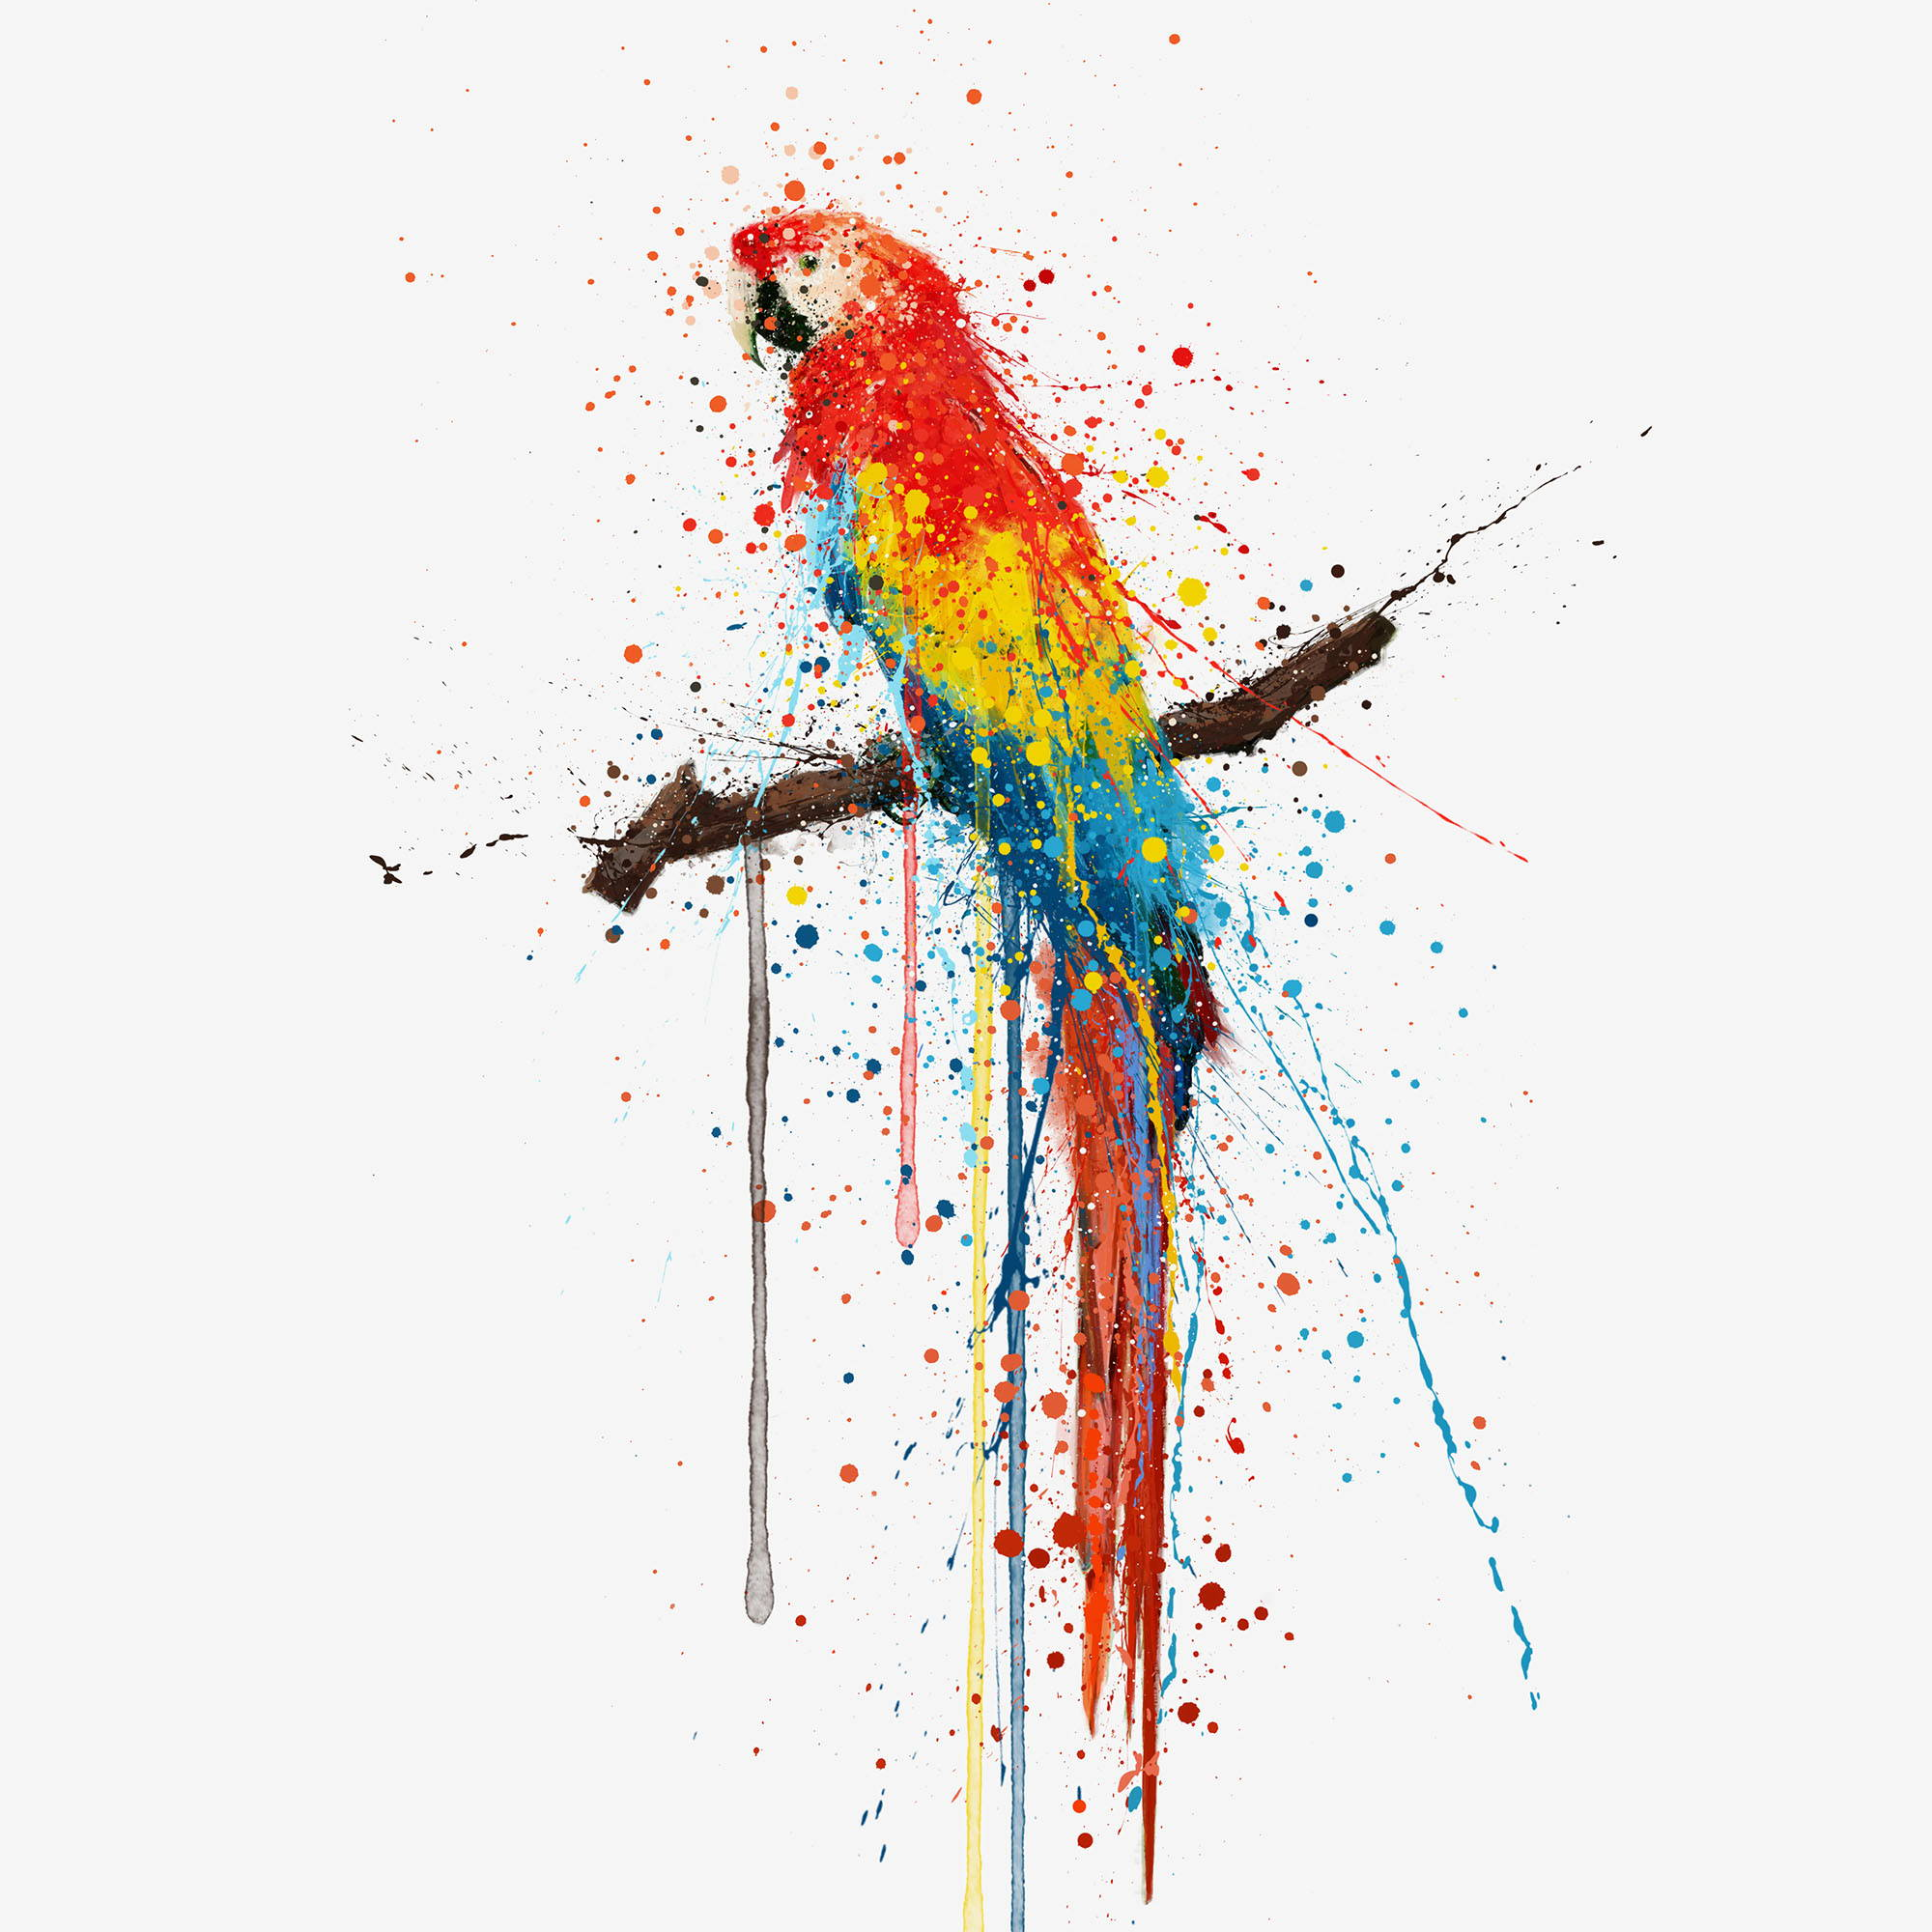 Scarlet Mccaw Parrot perched on a branch Wall Art Print.